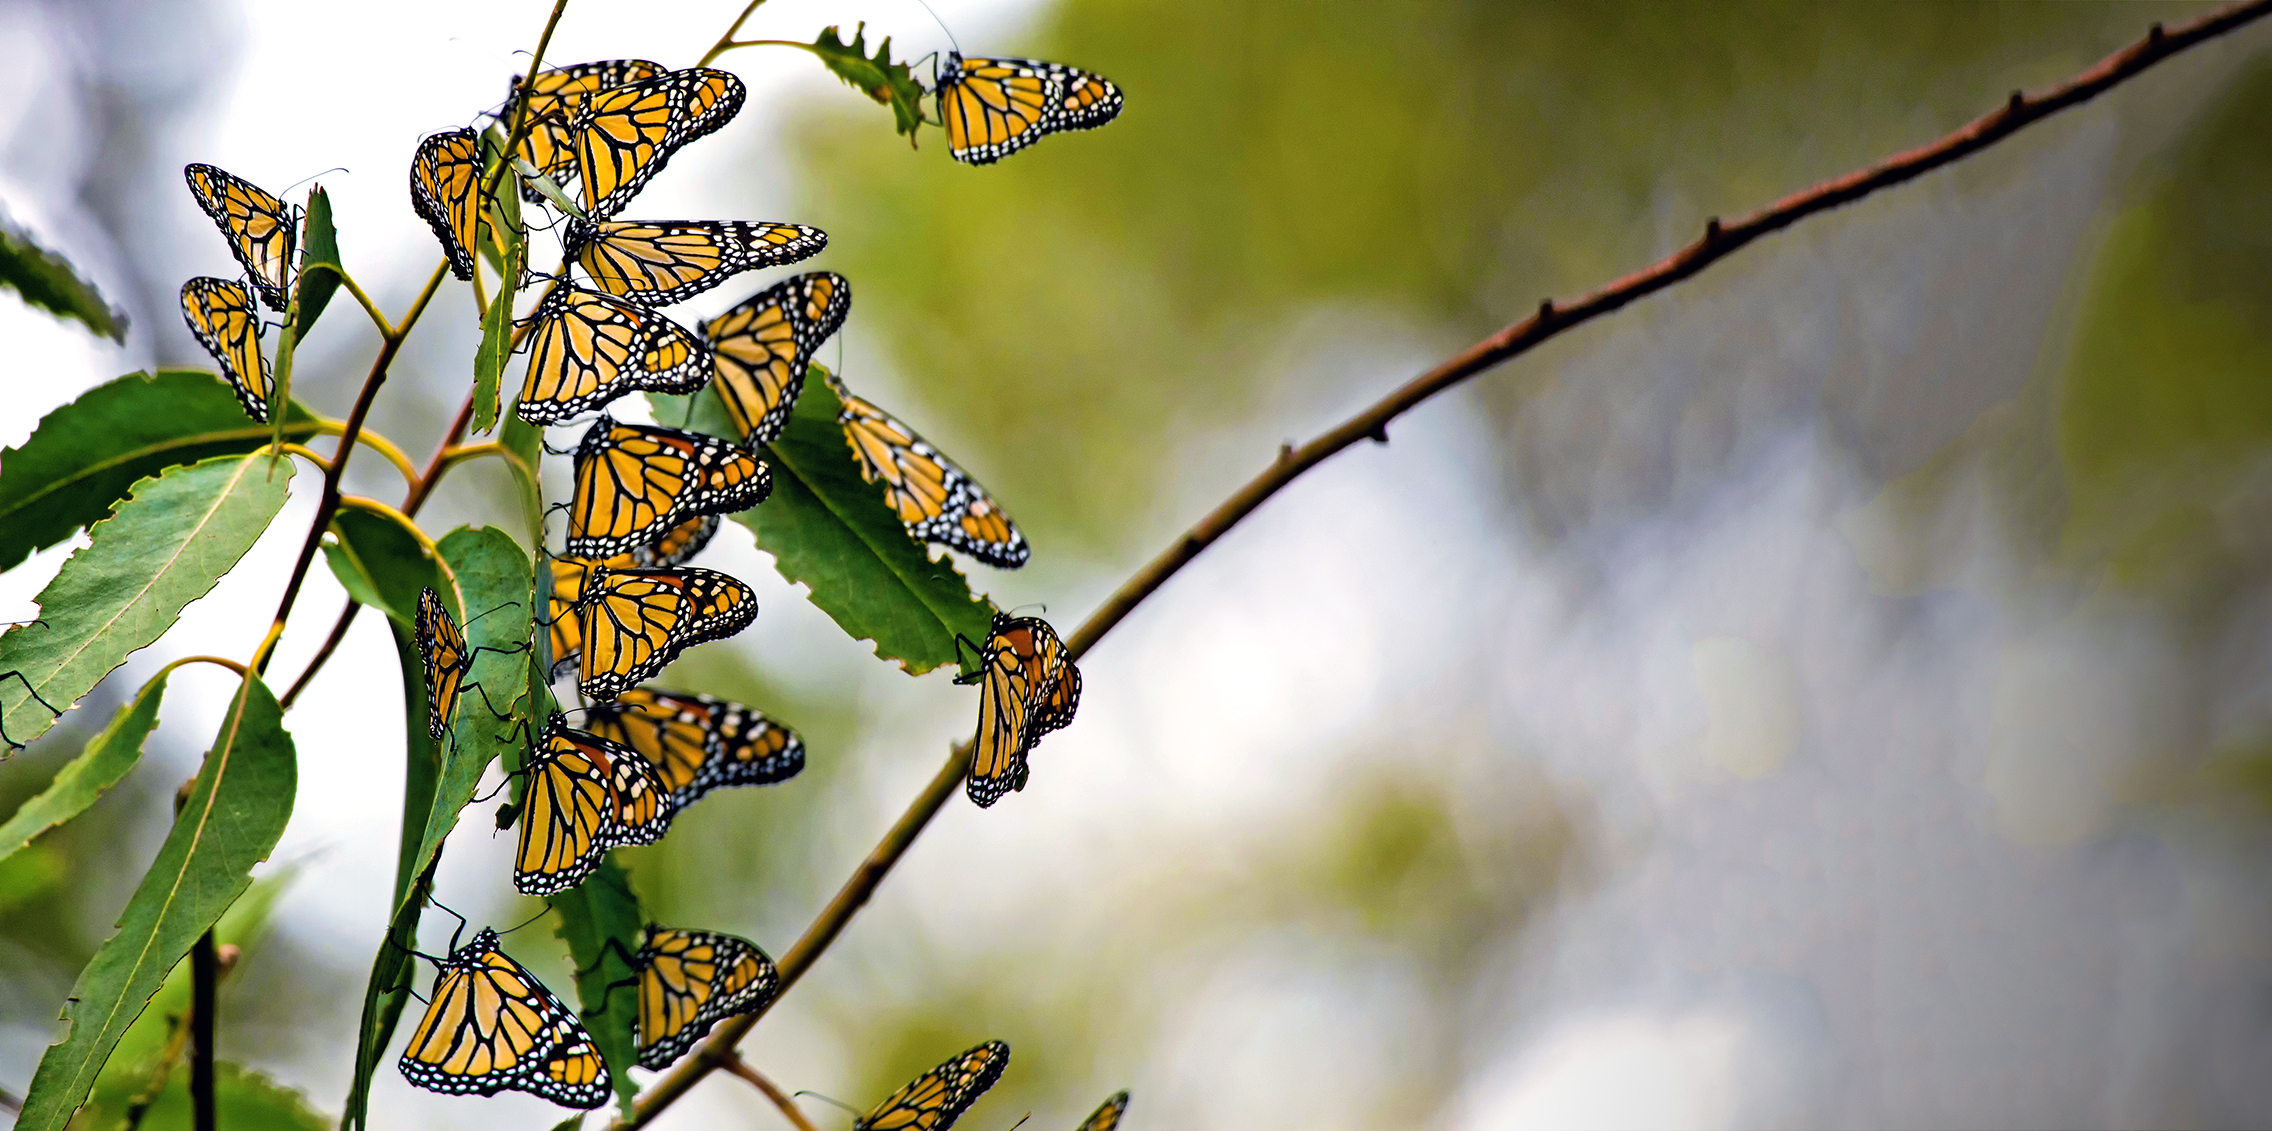 Many Monarch Butterflies (Danaus plexippus) on a tree branch. Taken near Pismo Beach in California, off the Pacific Coast Highway (SR 1).